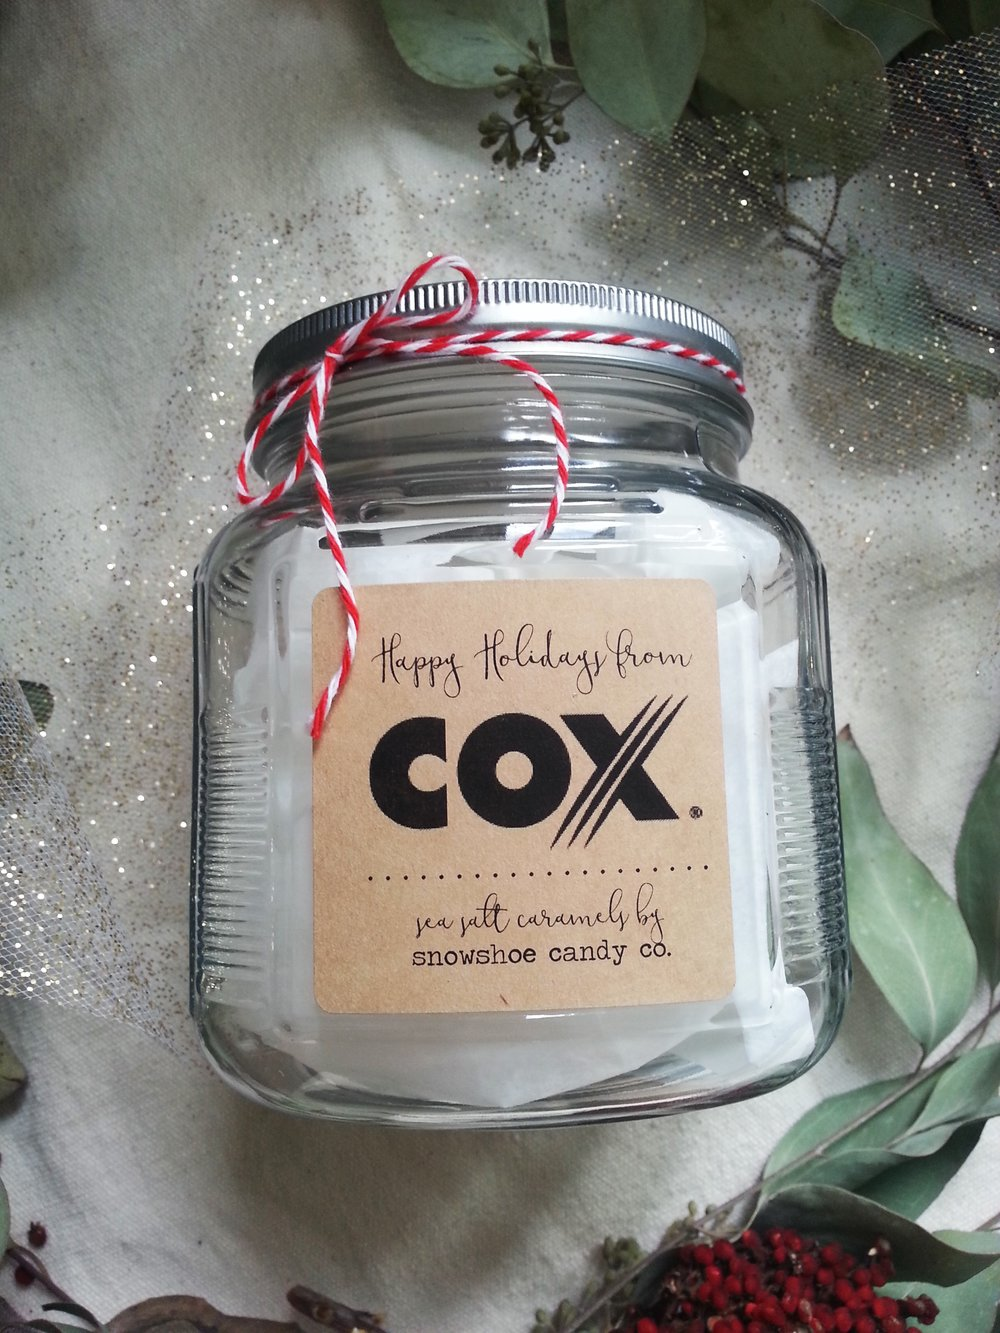 Featured sample of customized gift jars for Cox Business holiday gift items for their corporate clients.